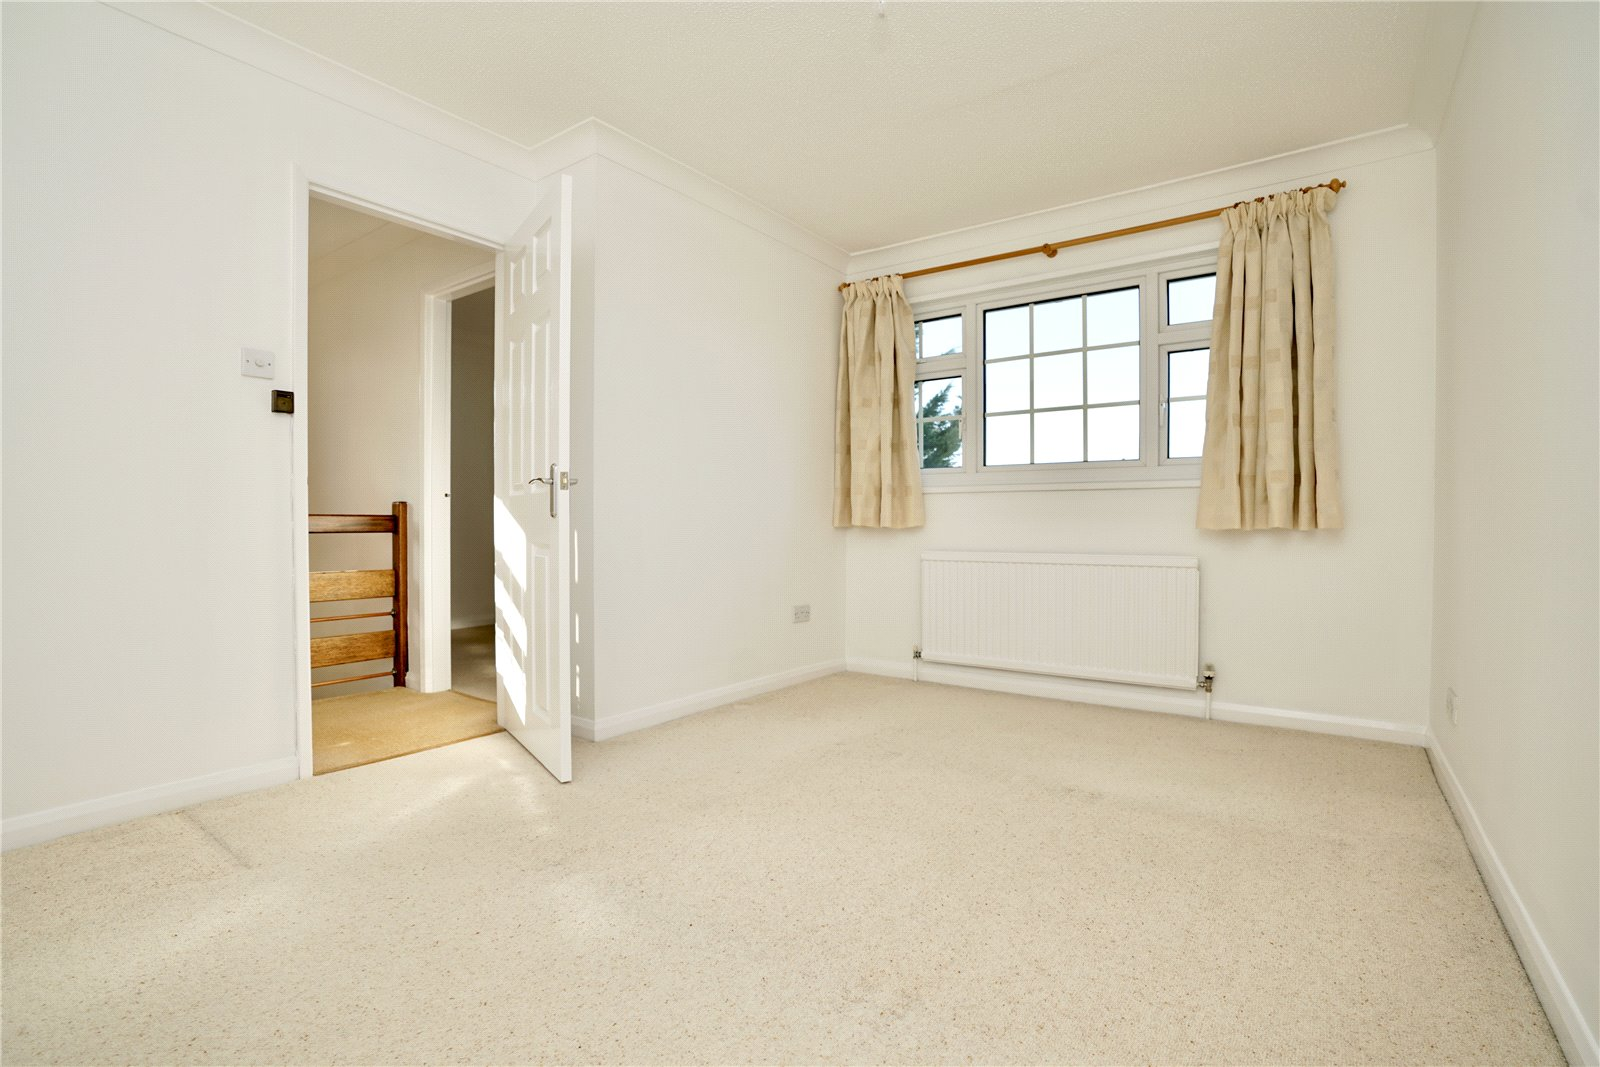 4 bed house for sale in All Hallows, Sandy 8